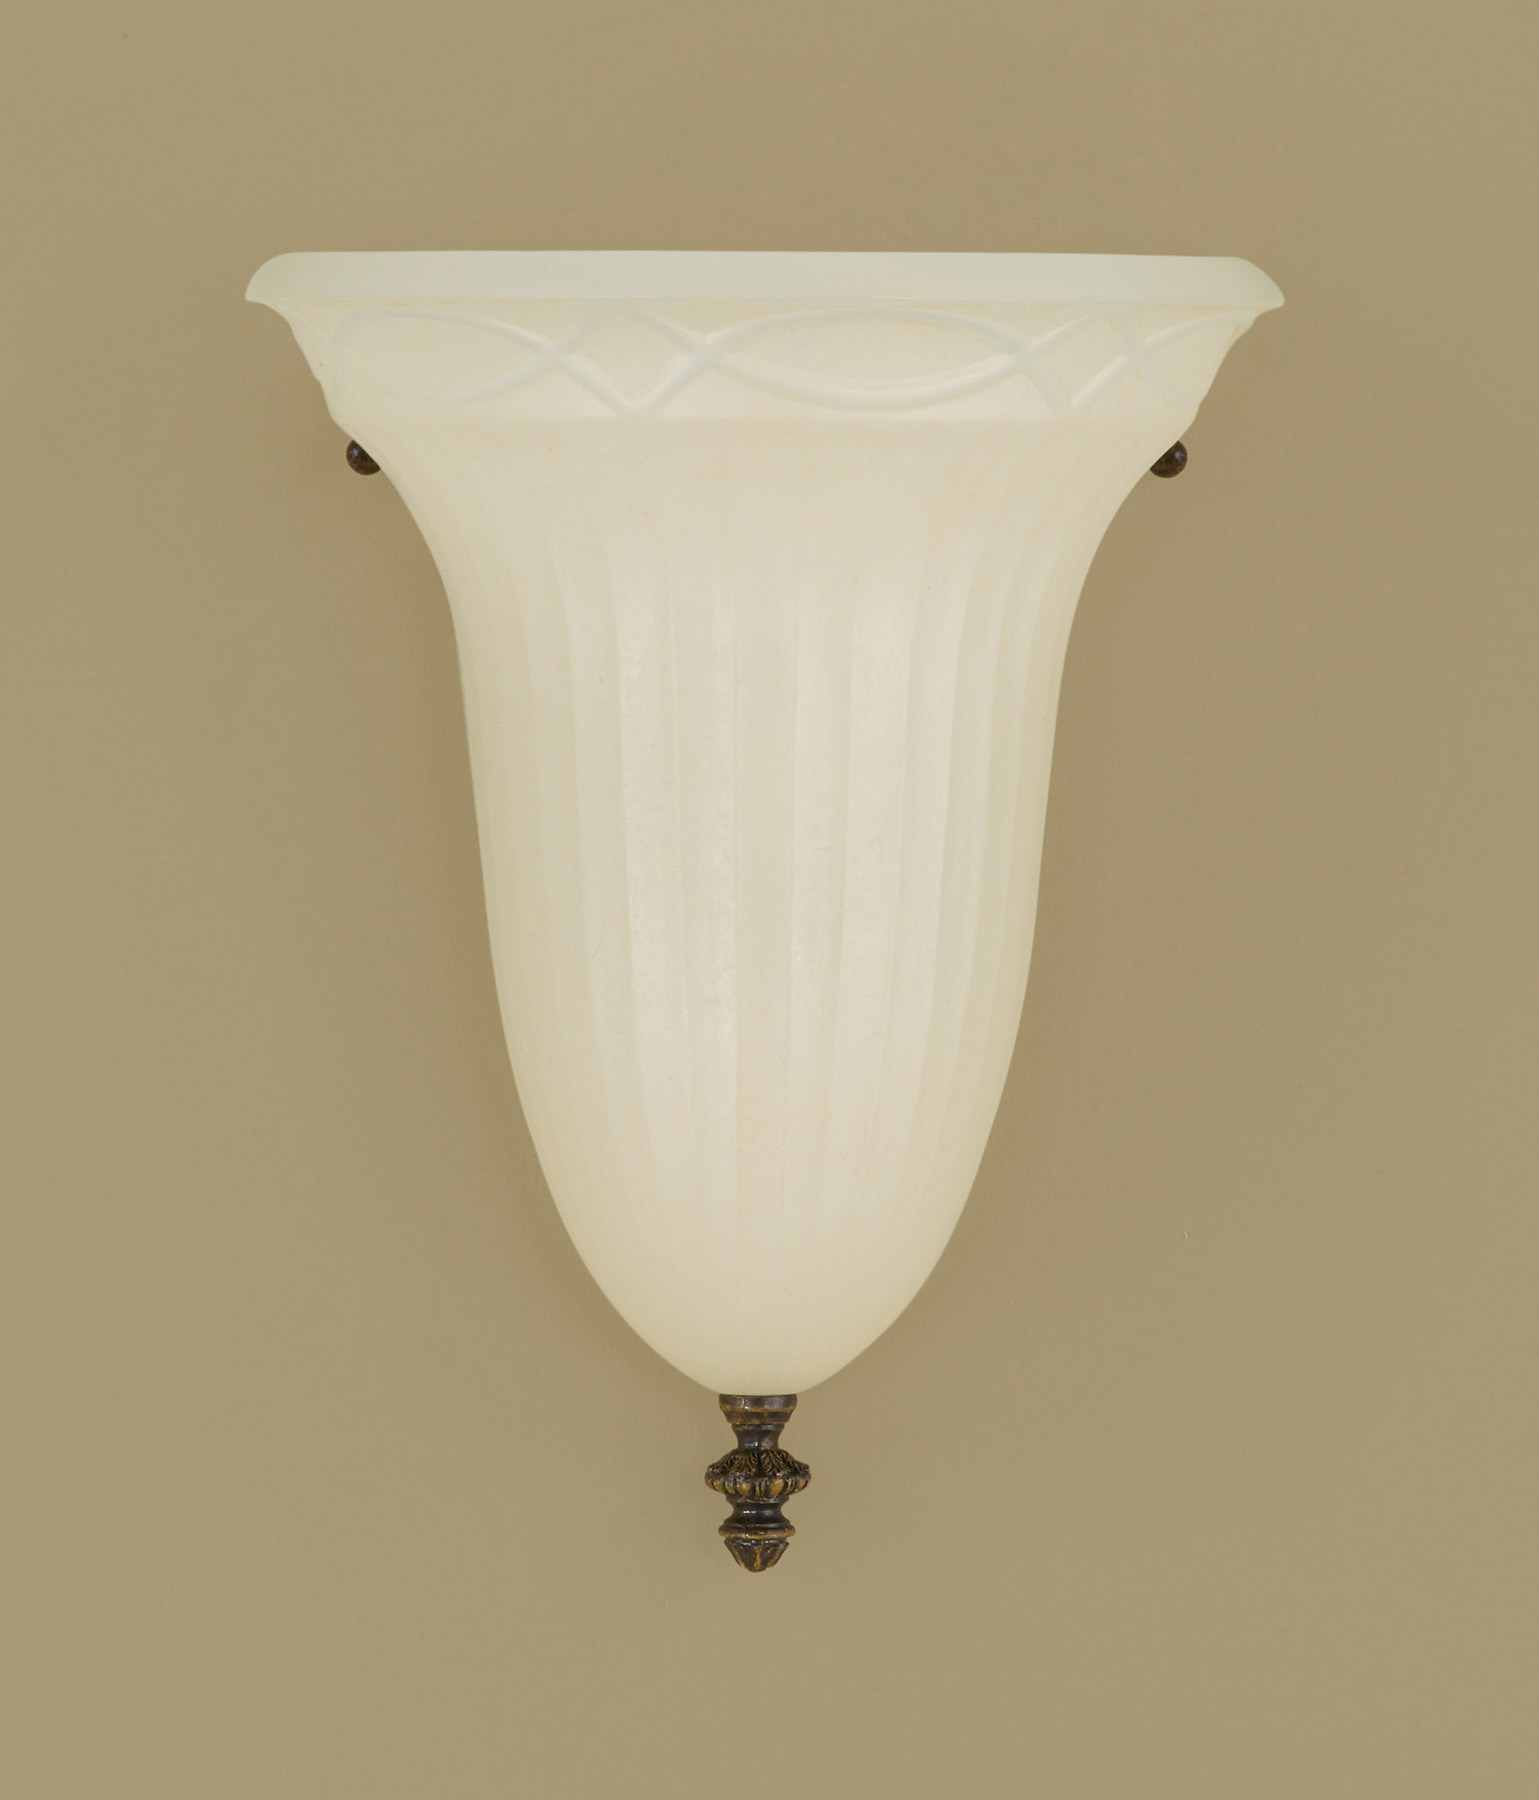 Murray Feiss Wall Sconces: Murray Feiss WB1331WAL Drawing Room Wall Sconce